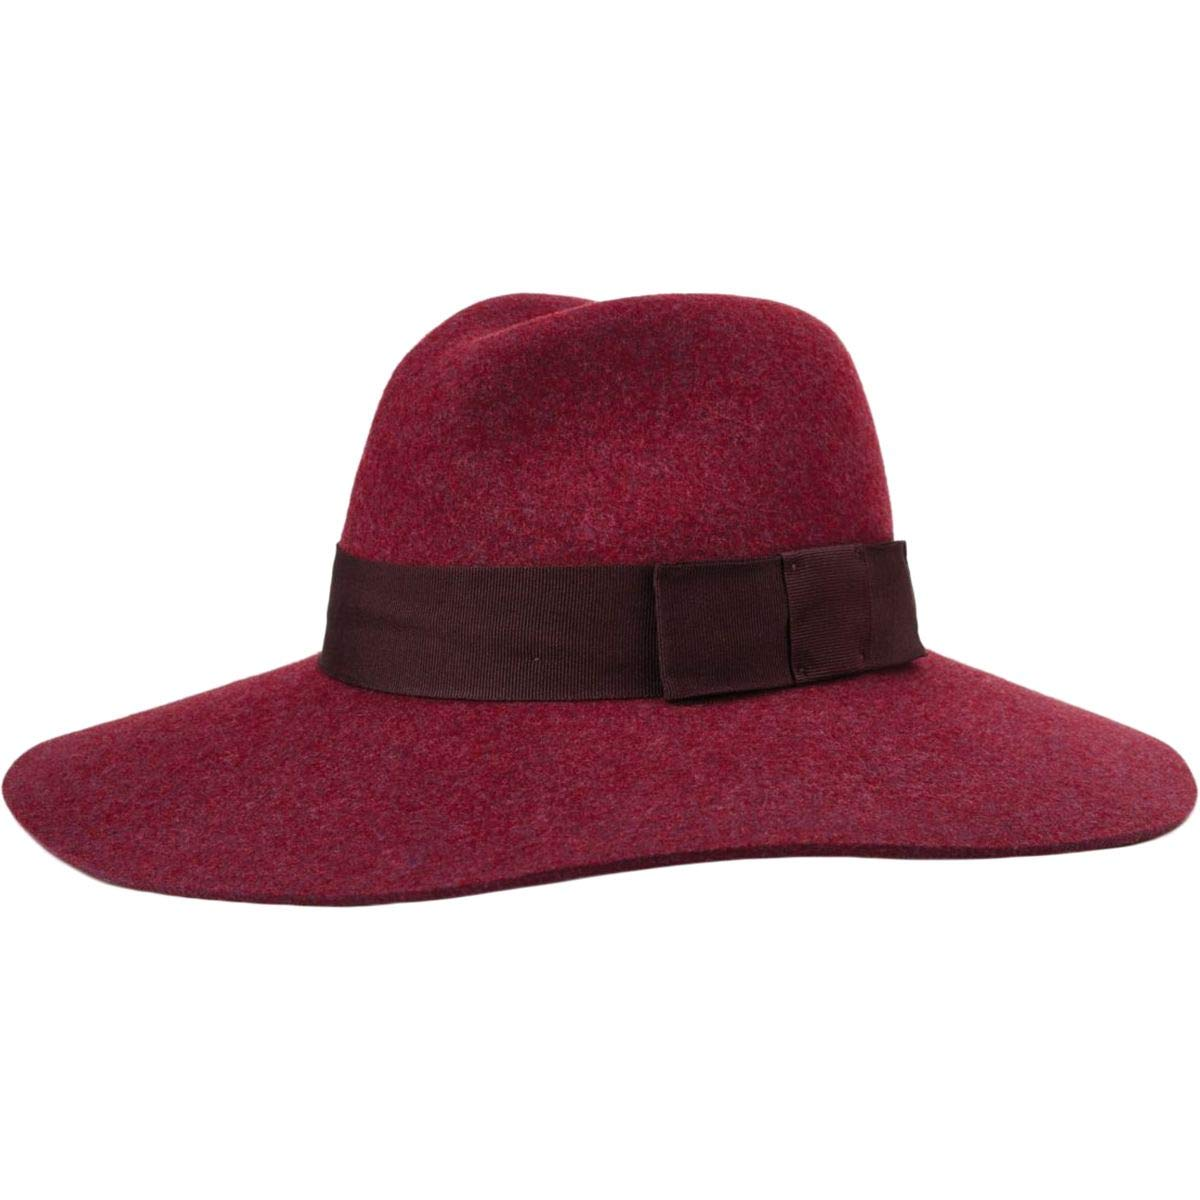 66af1516db001 Brixton Women s Piper Hat at Amazon Women s Clothing store